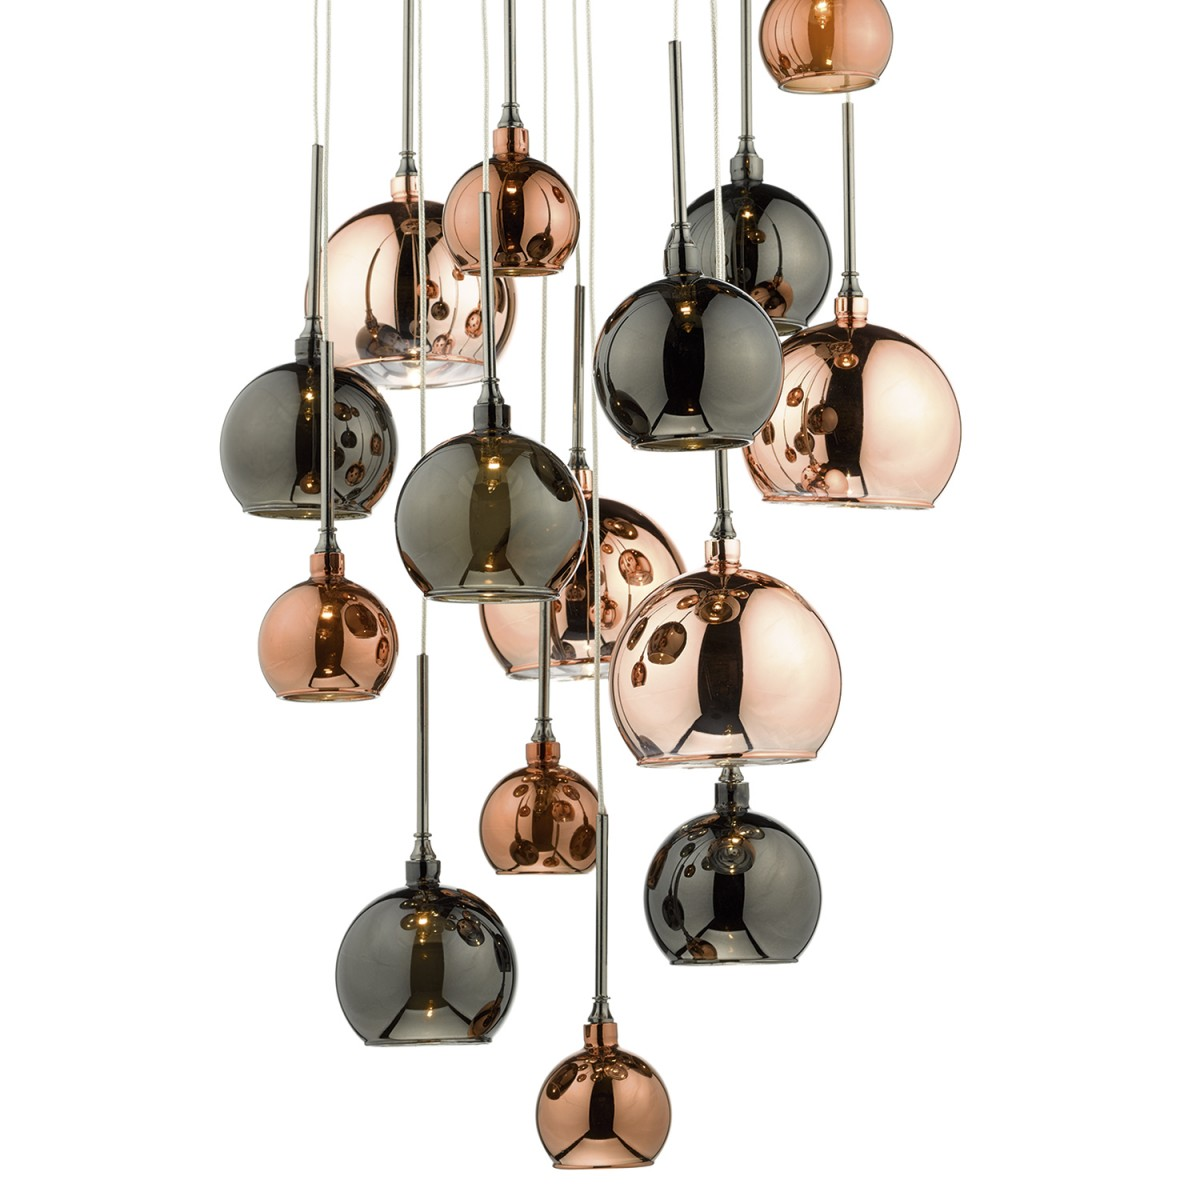 Copper coloured ceiling lights ceiling light ideas copper coloured ceiling lights designs aloadofball Image collections